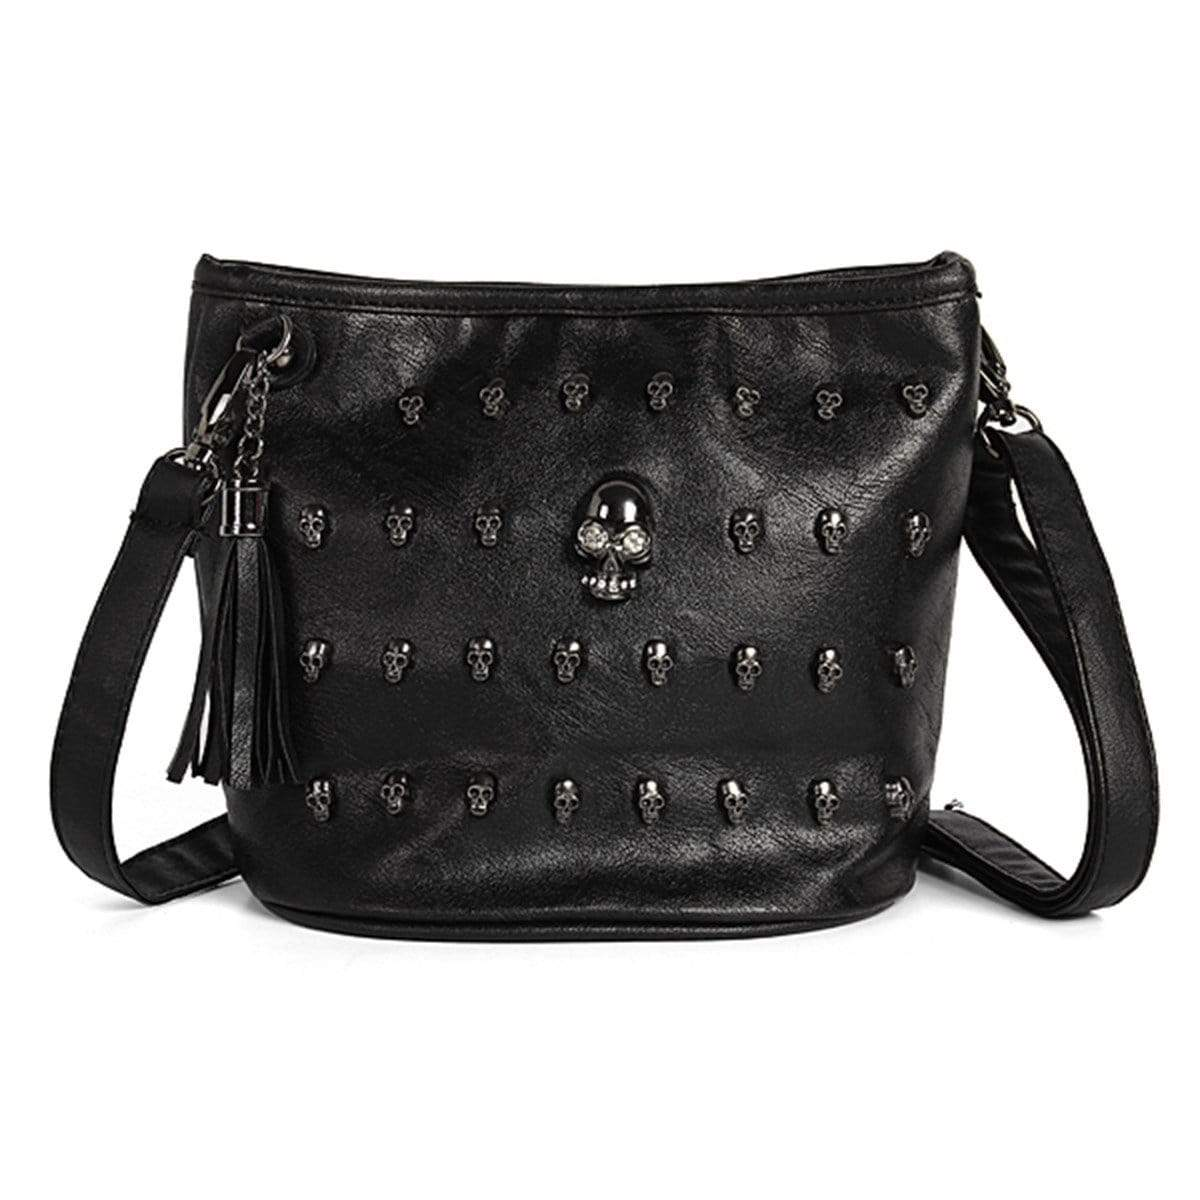 Skull face studded Gothic purse